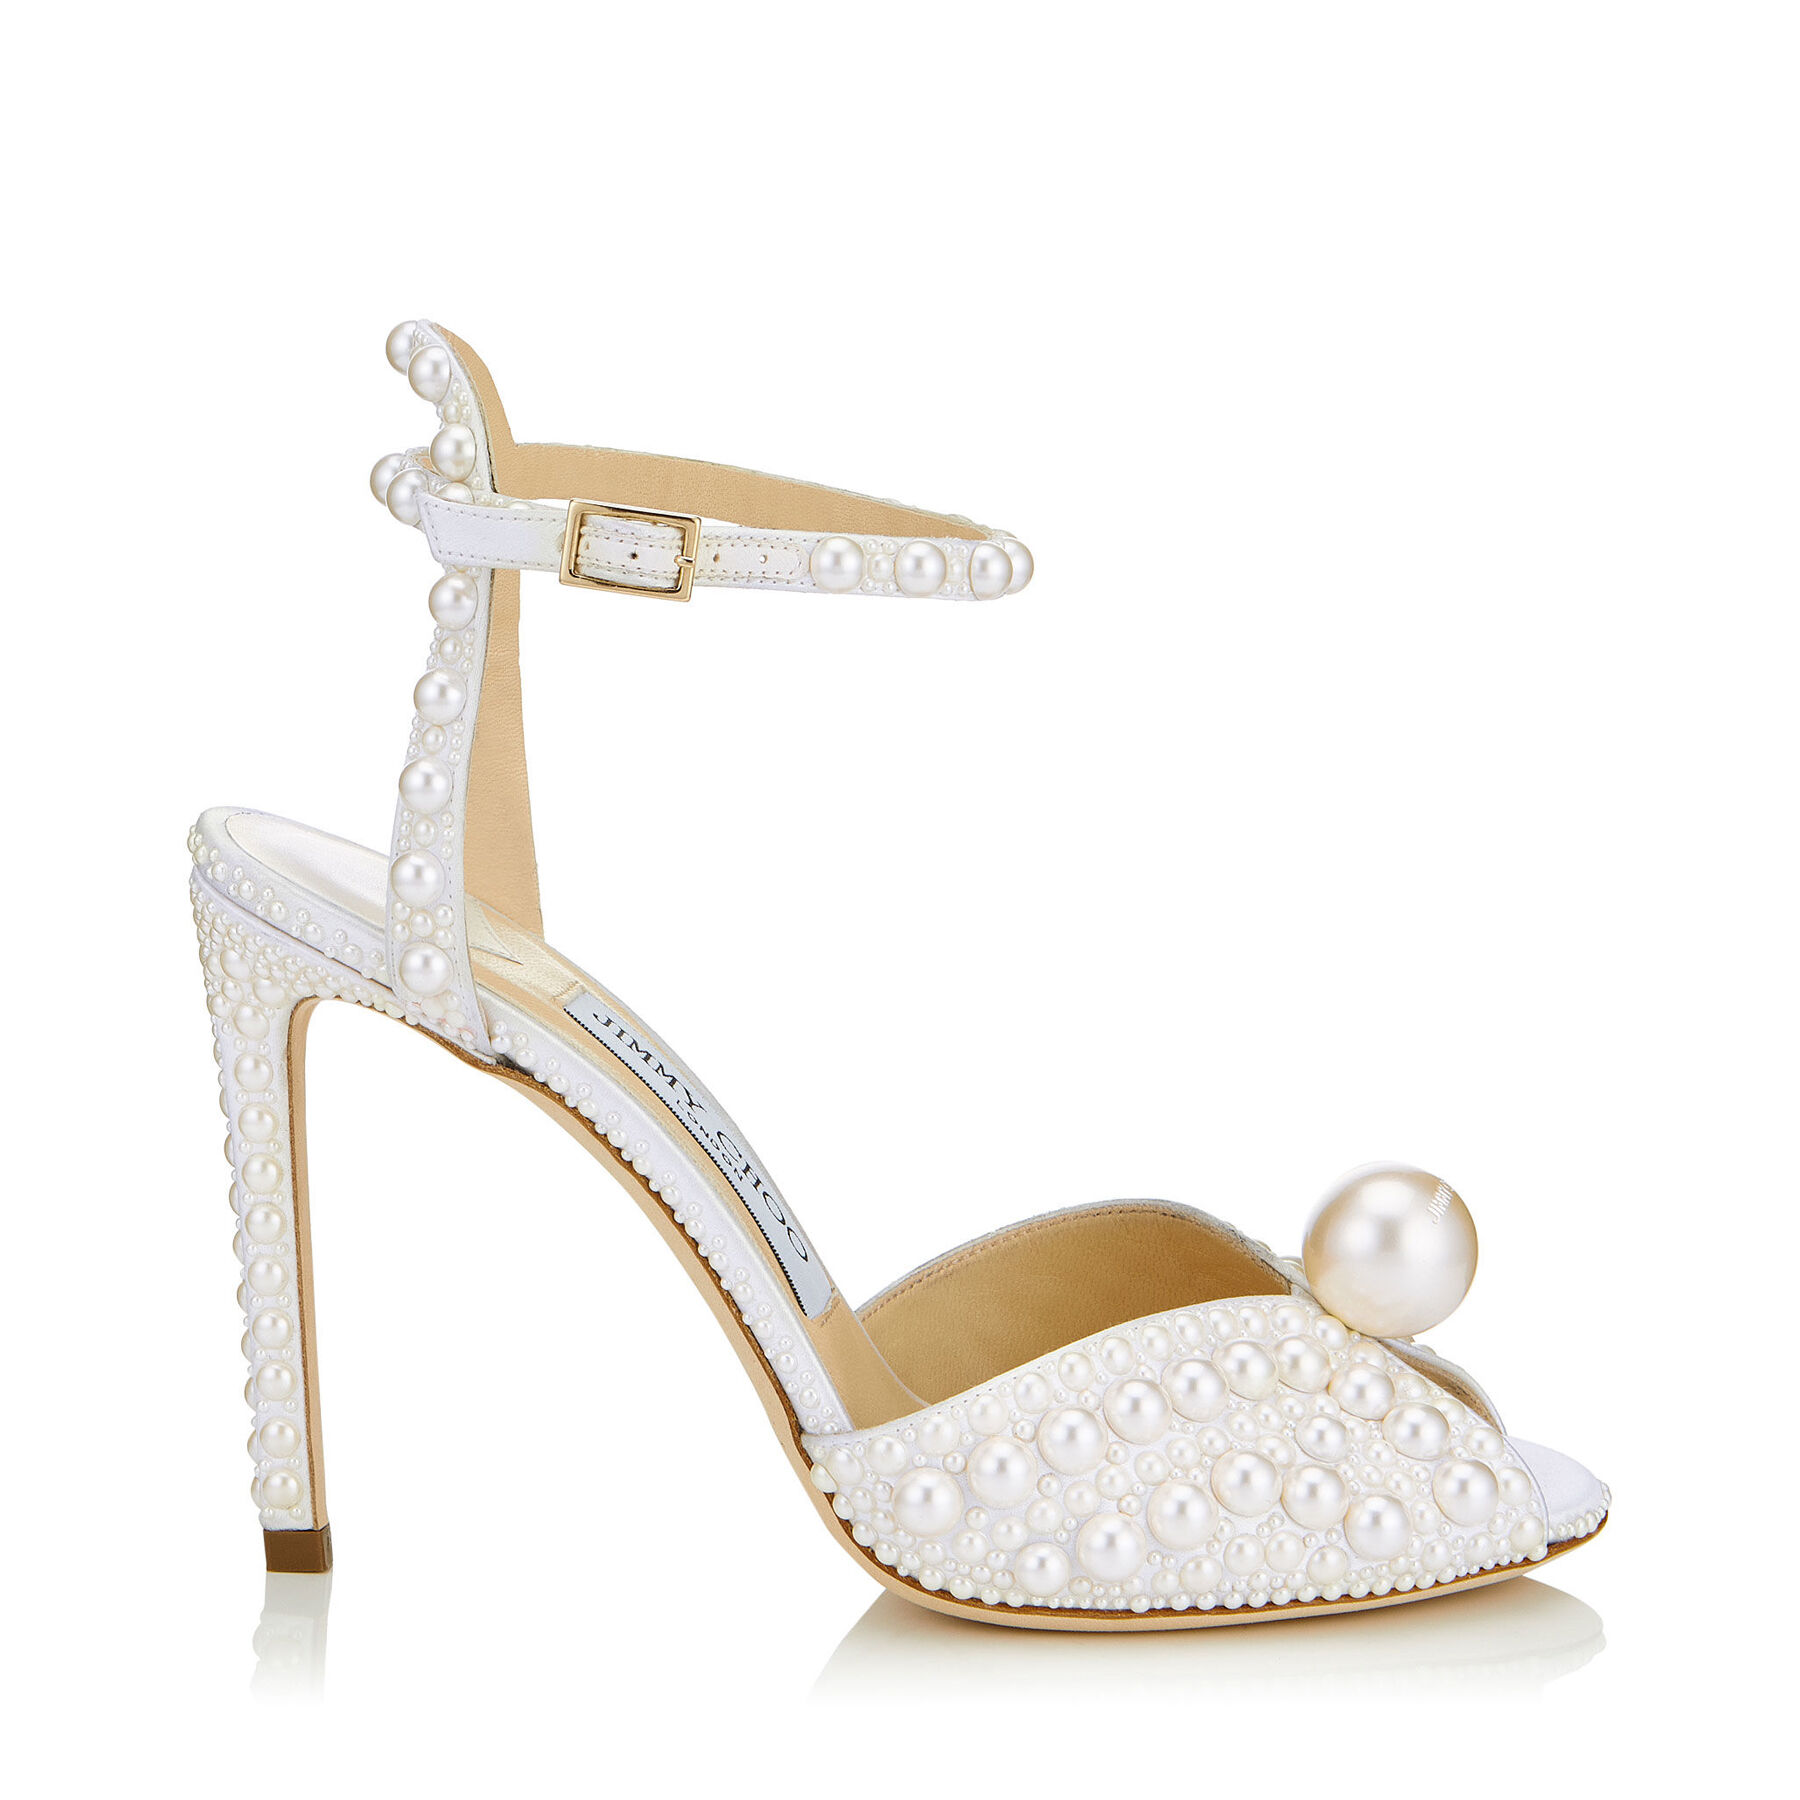 SACORA 100 by Jimmy Choo, available on jimmychoo.com for EUR1595 Kylie Jenner Shoes Exact Product